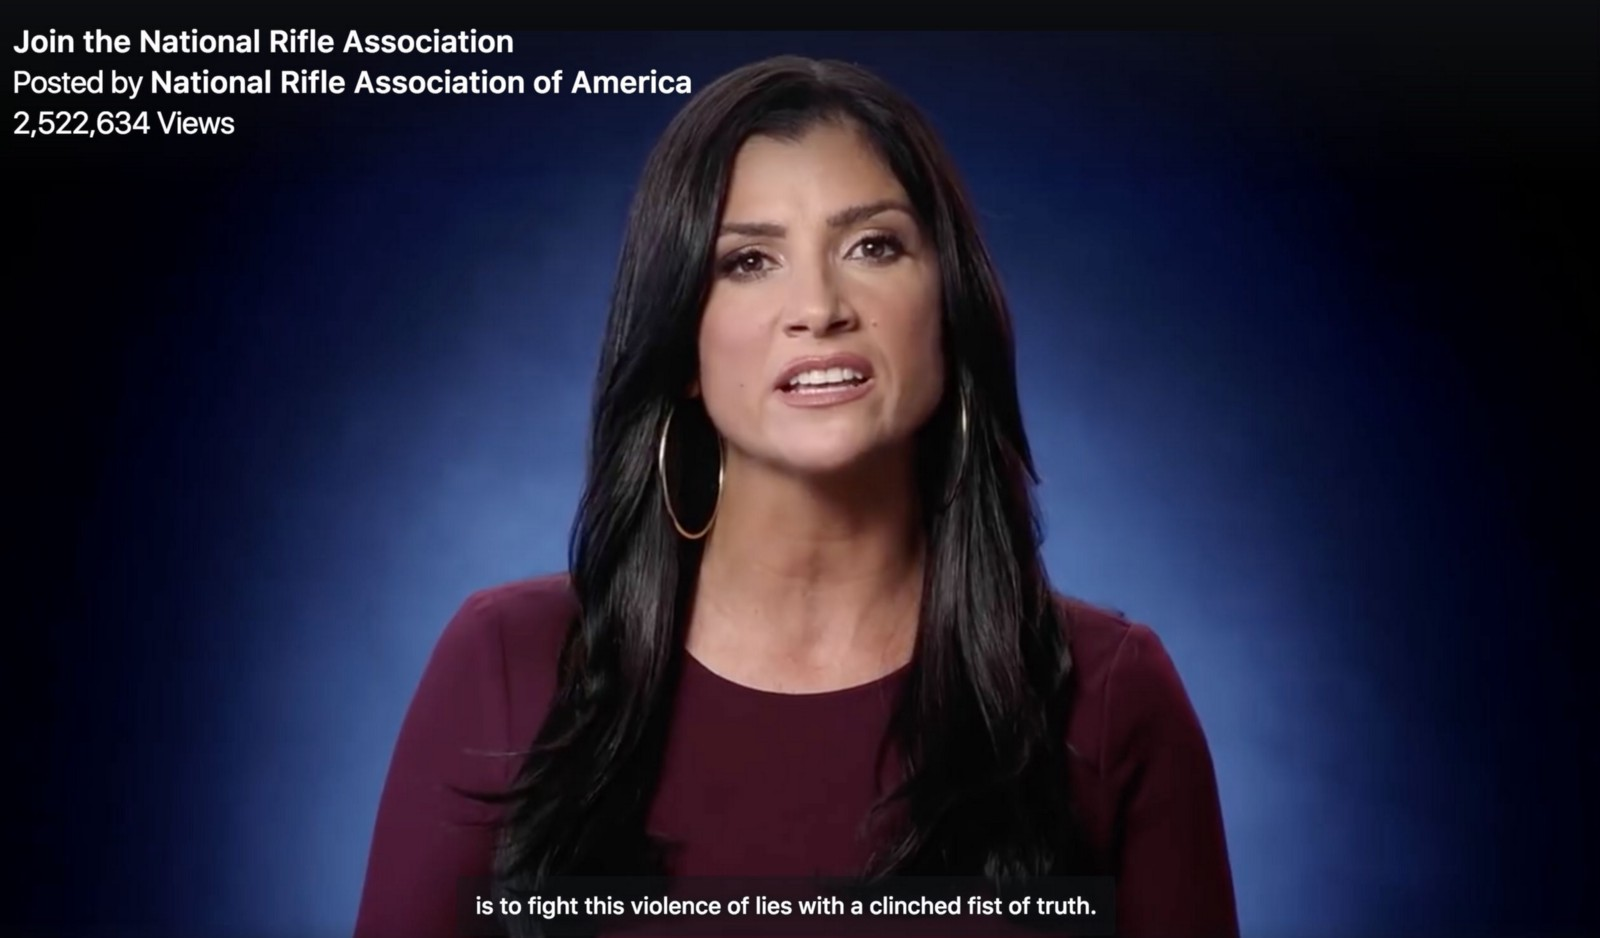 NRA's Dana Loesch Defends Ad Targeting Media, Hollywood's 'Violence of Lies'